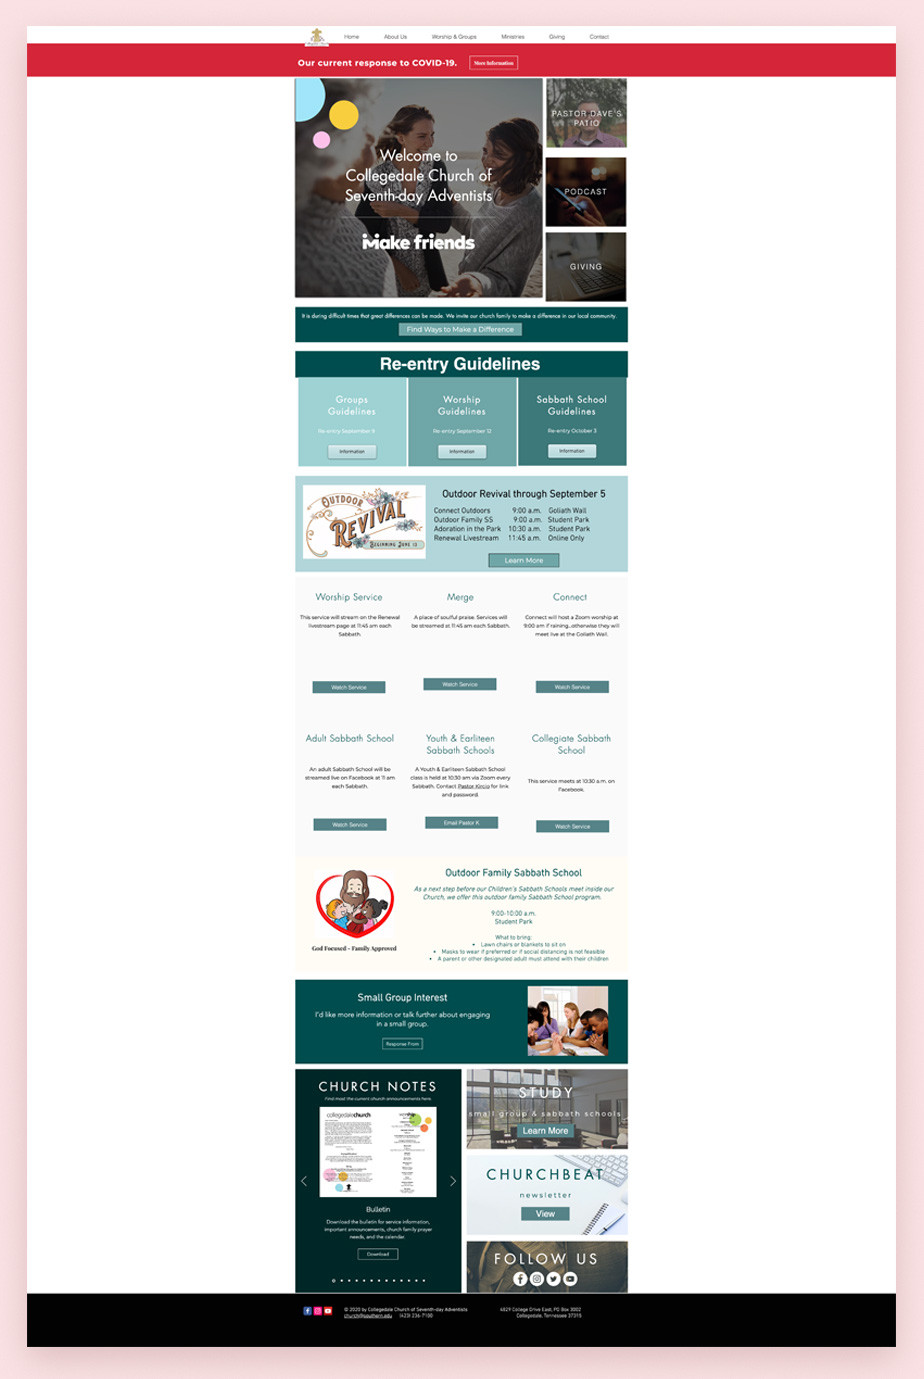 Best church websites example by Collegedale Church